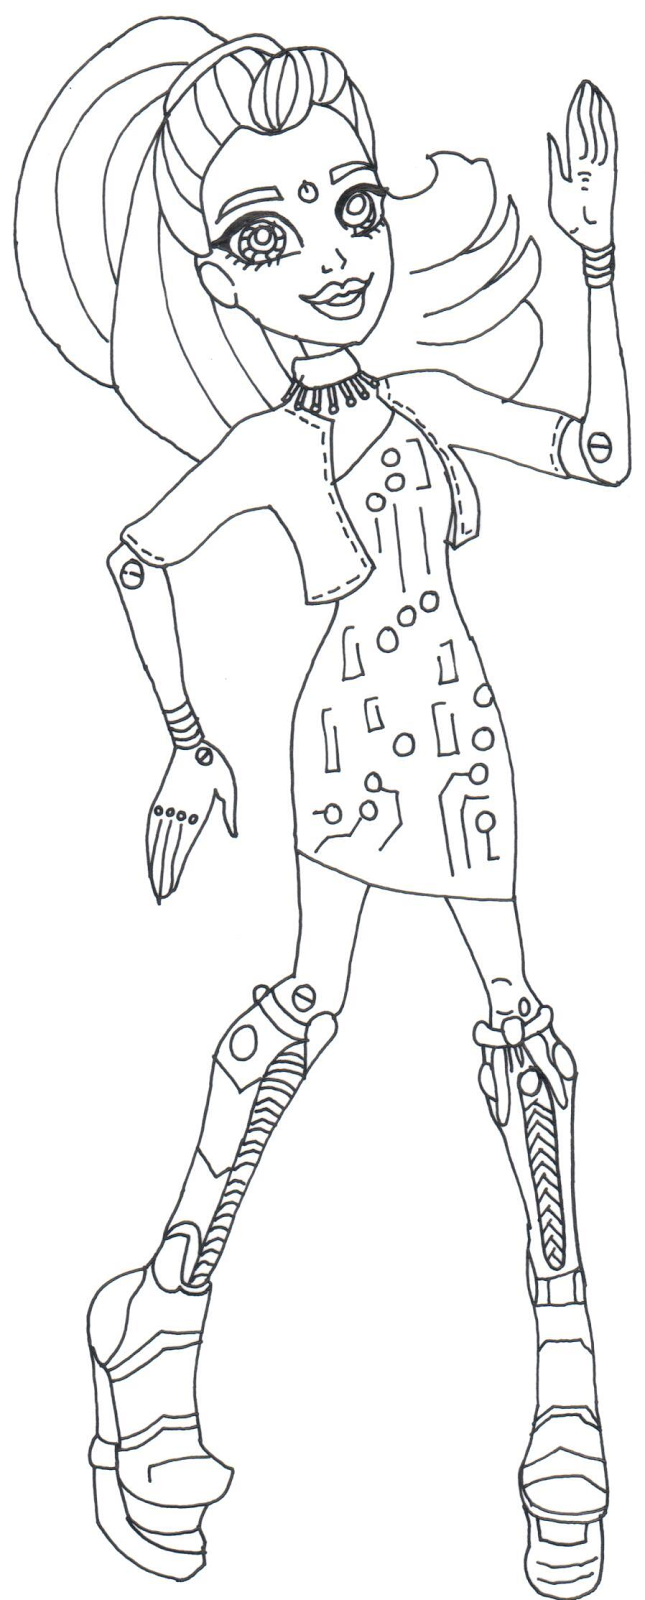 robot monster coloring pages - photo#17